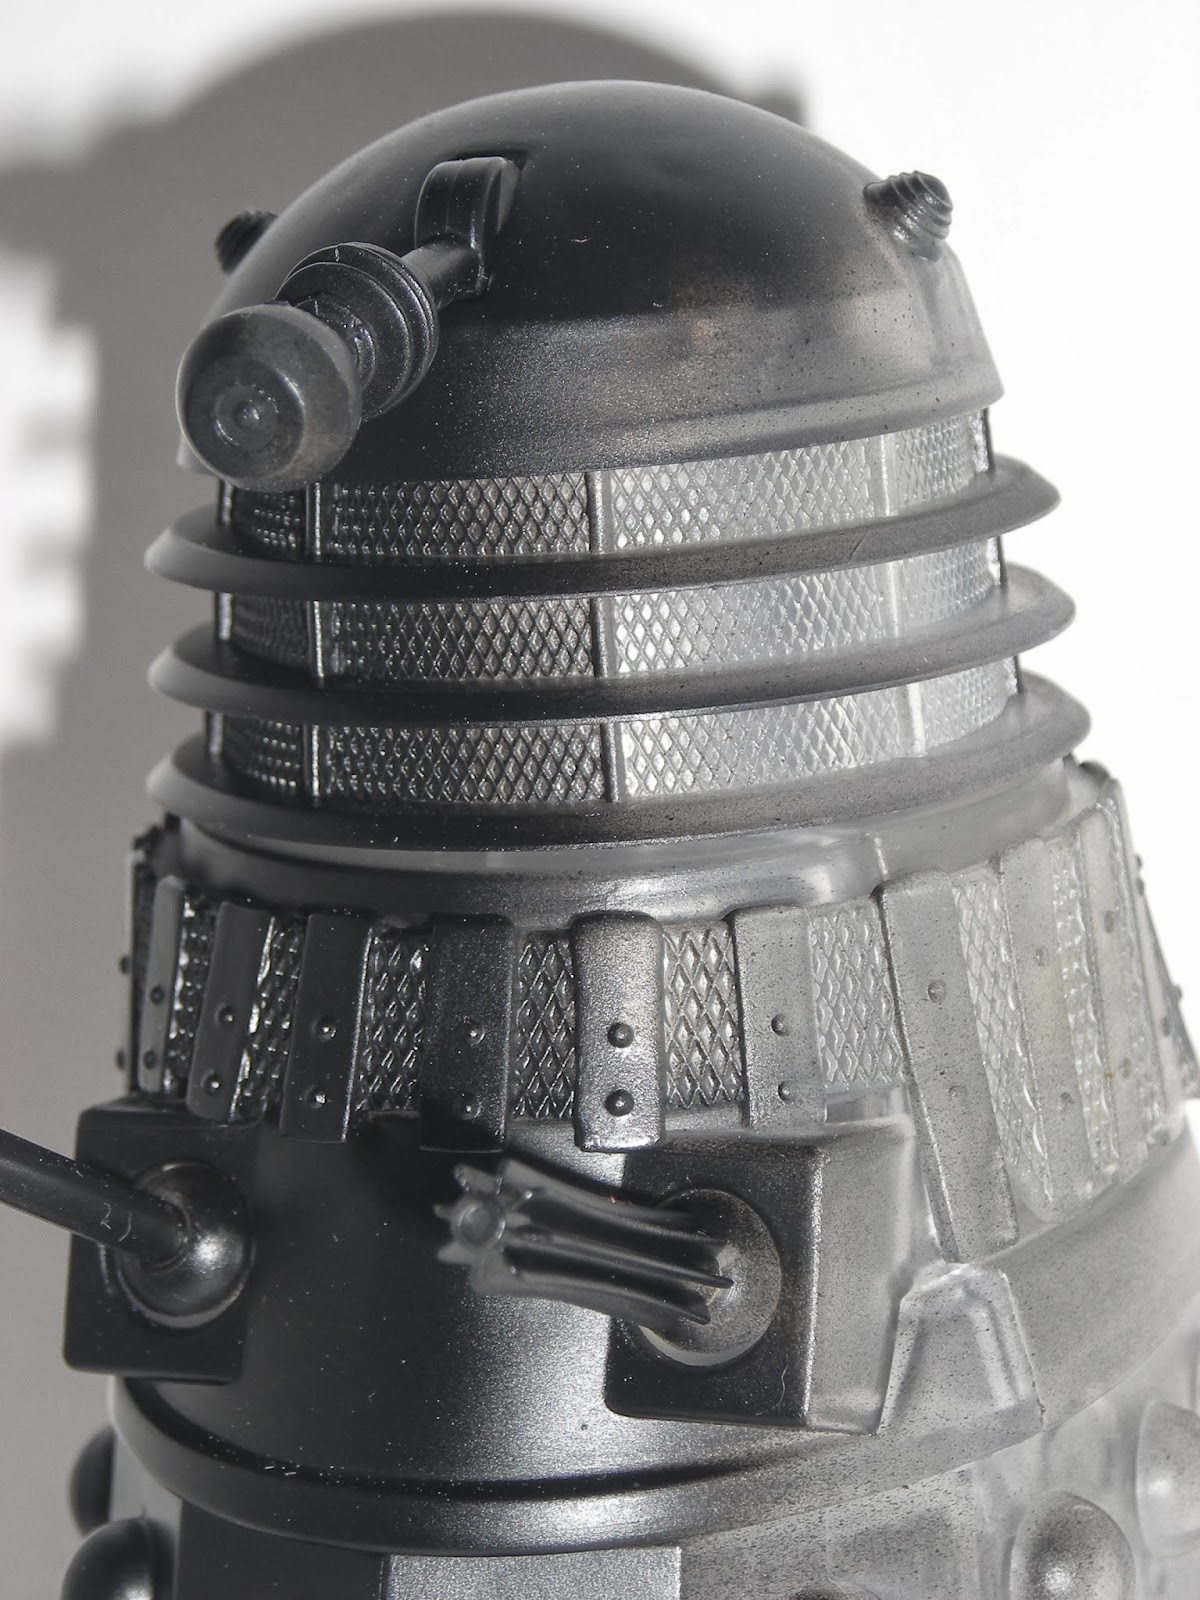 The Anti-Reflecting Light Wave Dalek